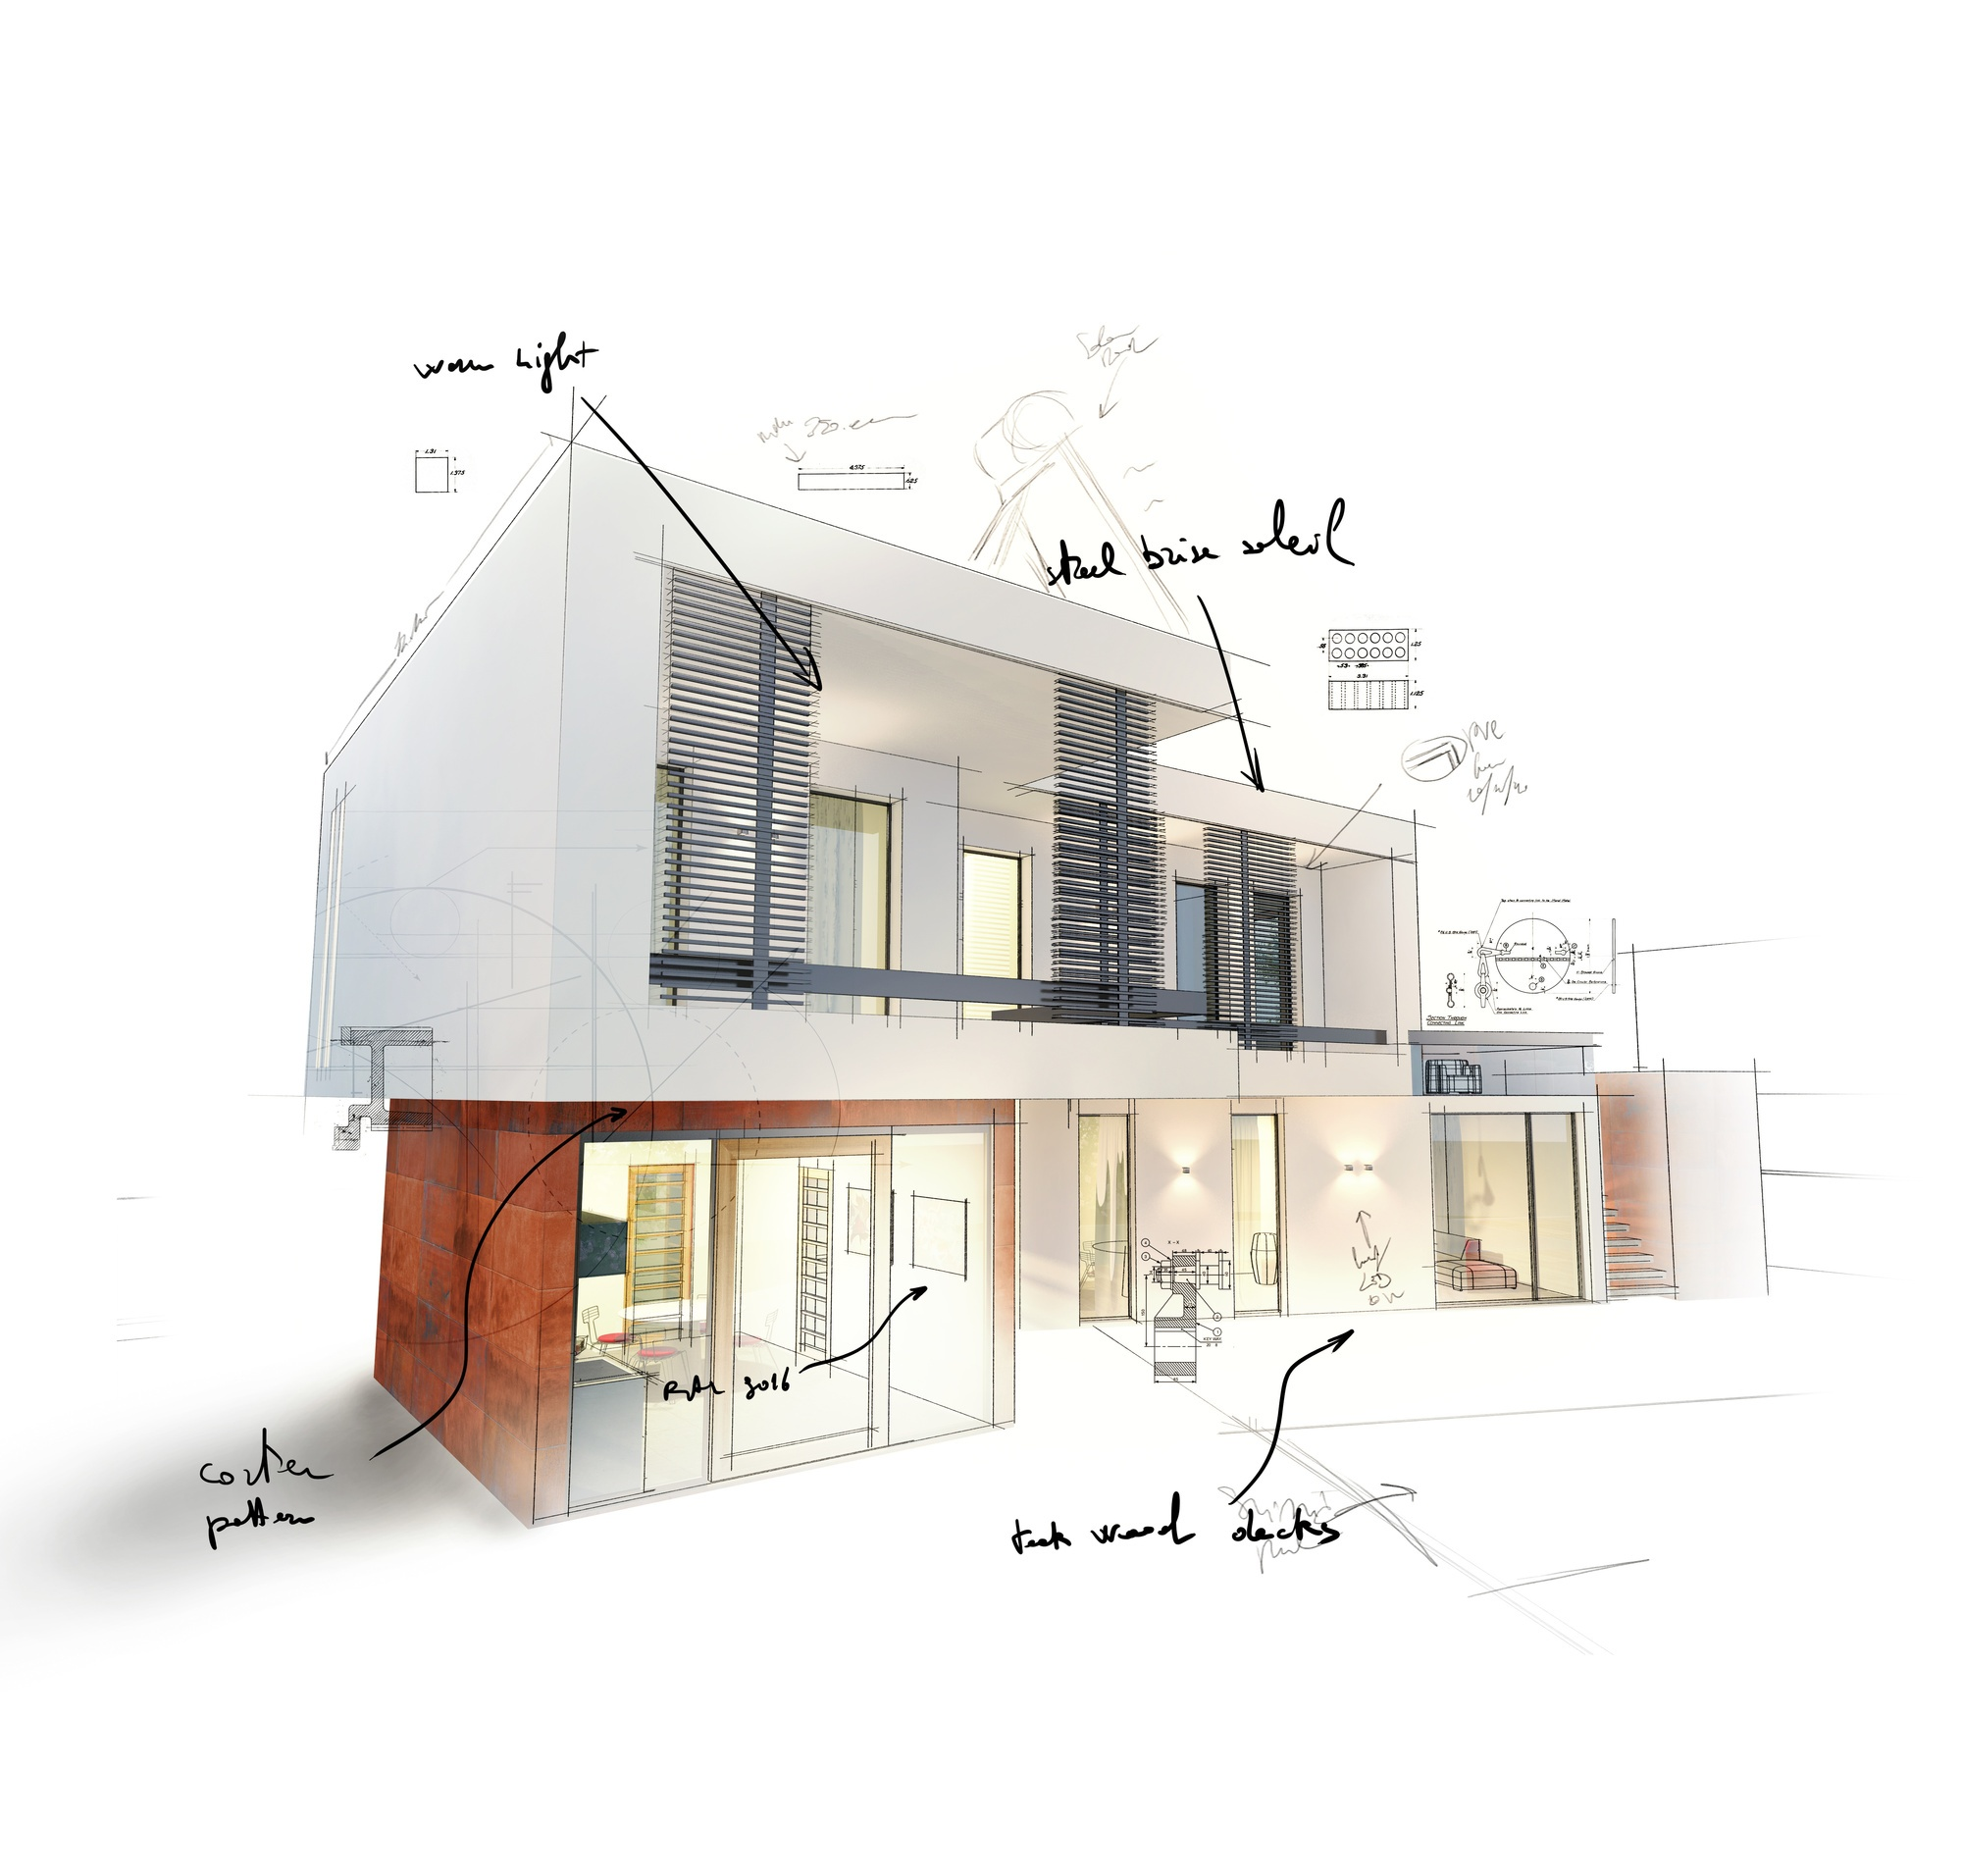 Sketch of a new home architecture project